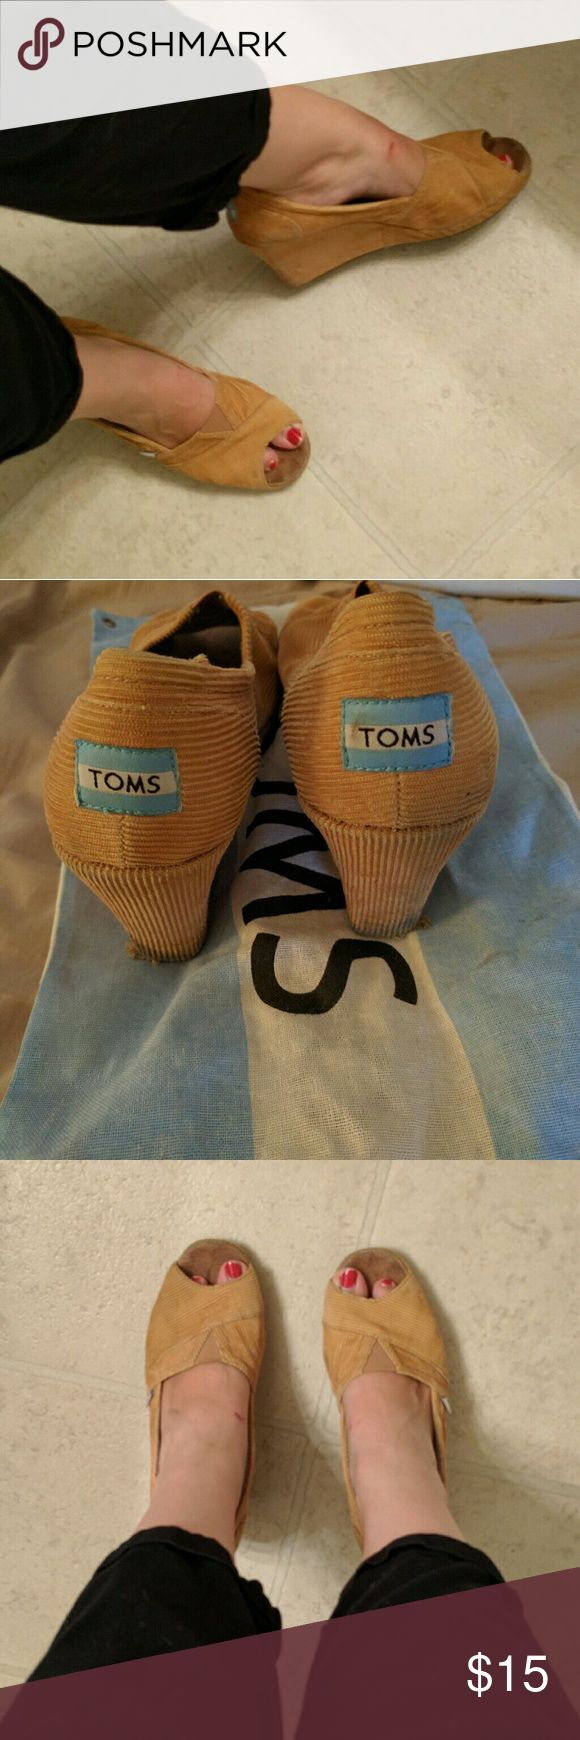 Tom wedges in bag These are worn as shown but still have lots of comfy life left in them for you. Frey is not noticible when standing. They want a second life! Toms Shoes Wedges